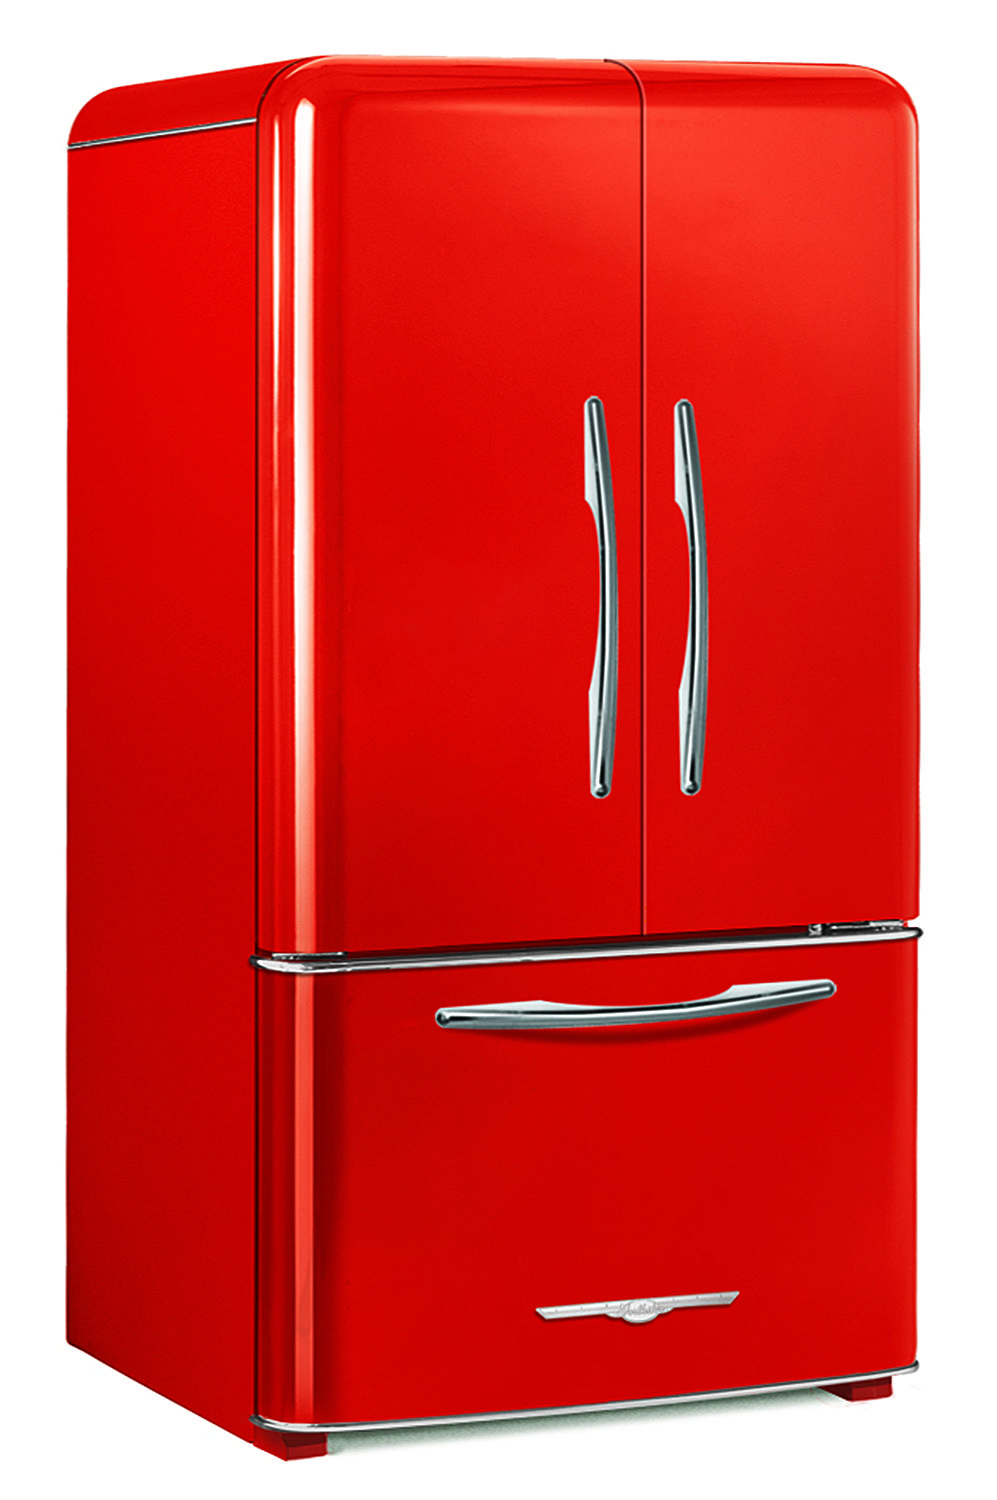 1948 northstar candy red french door refrigerator